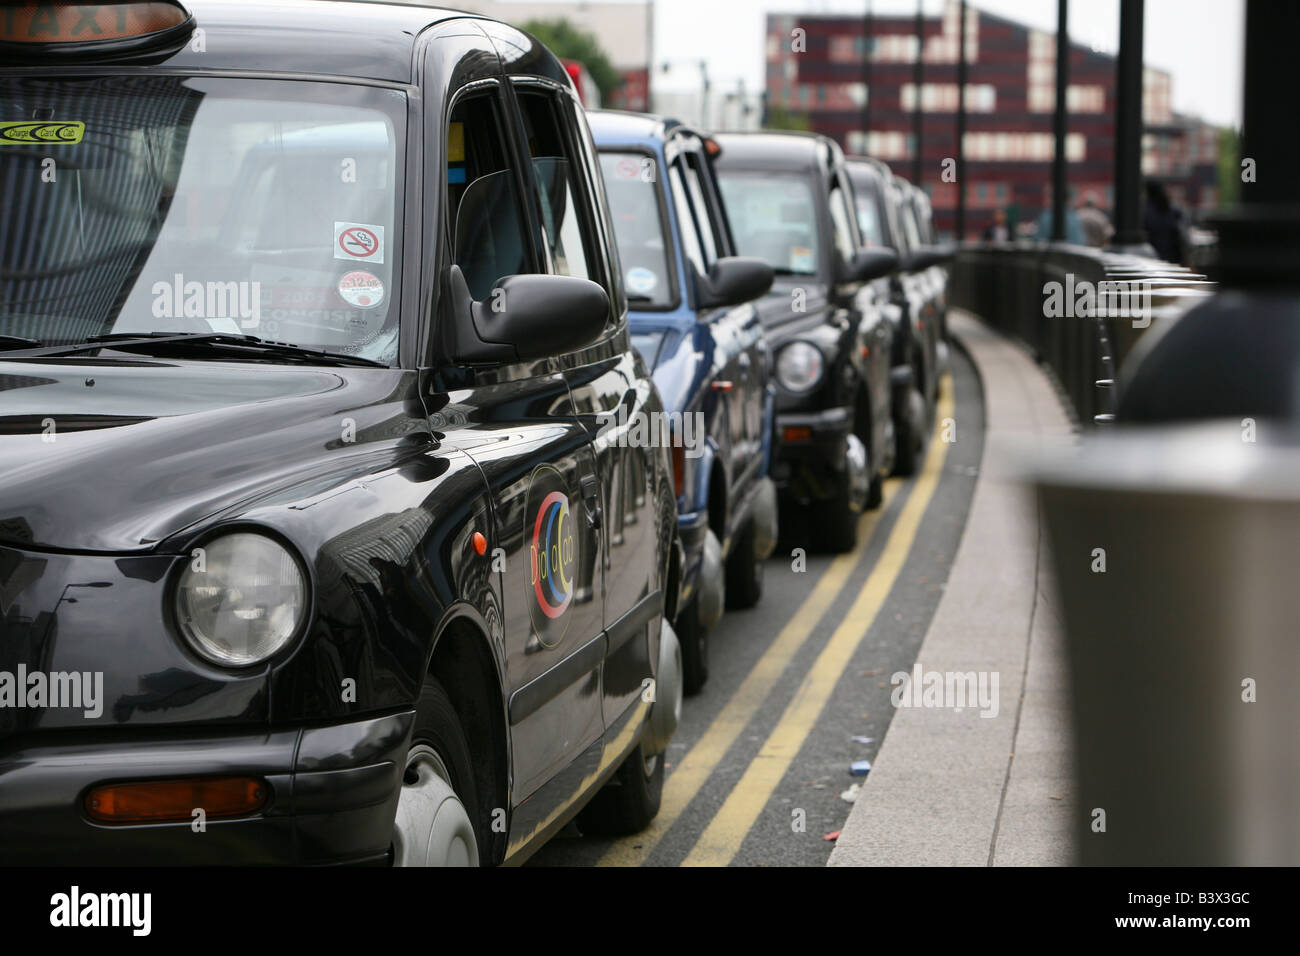 Taxi rank in a financial district. - Stock Image